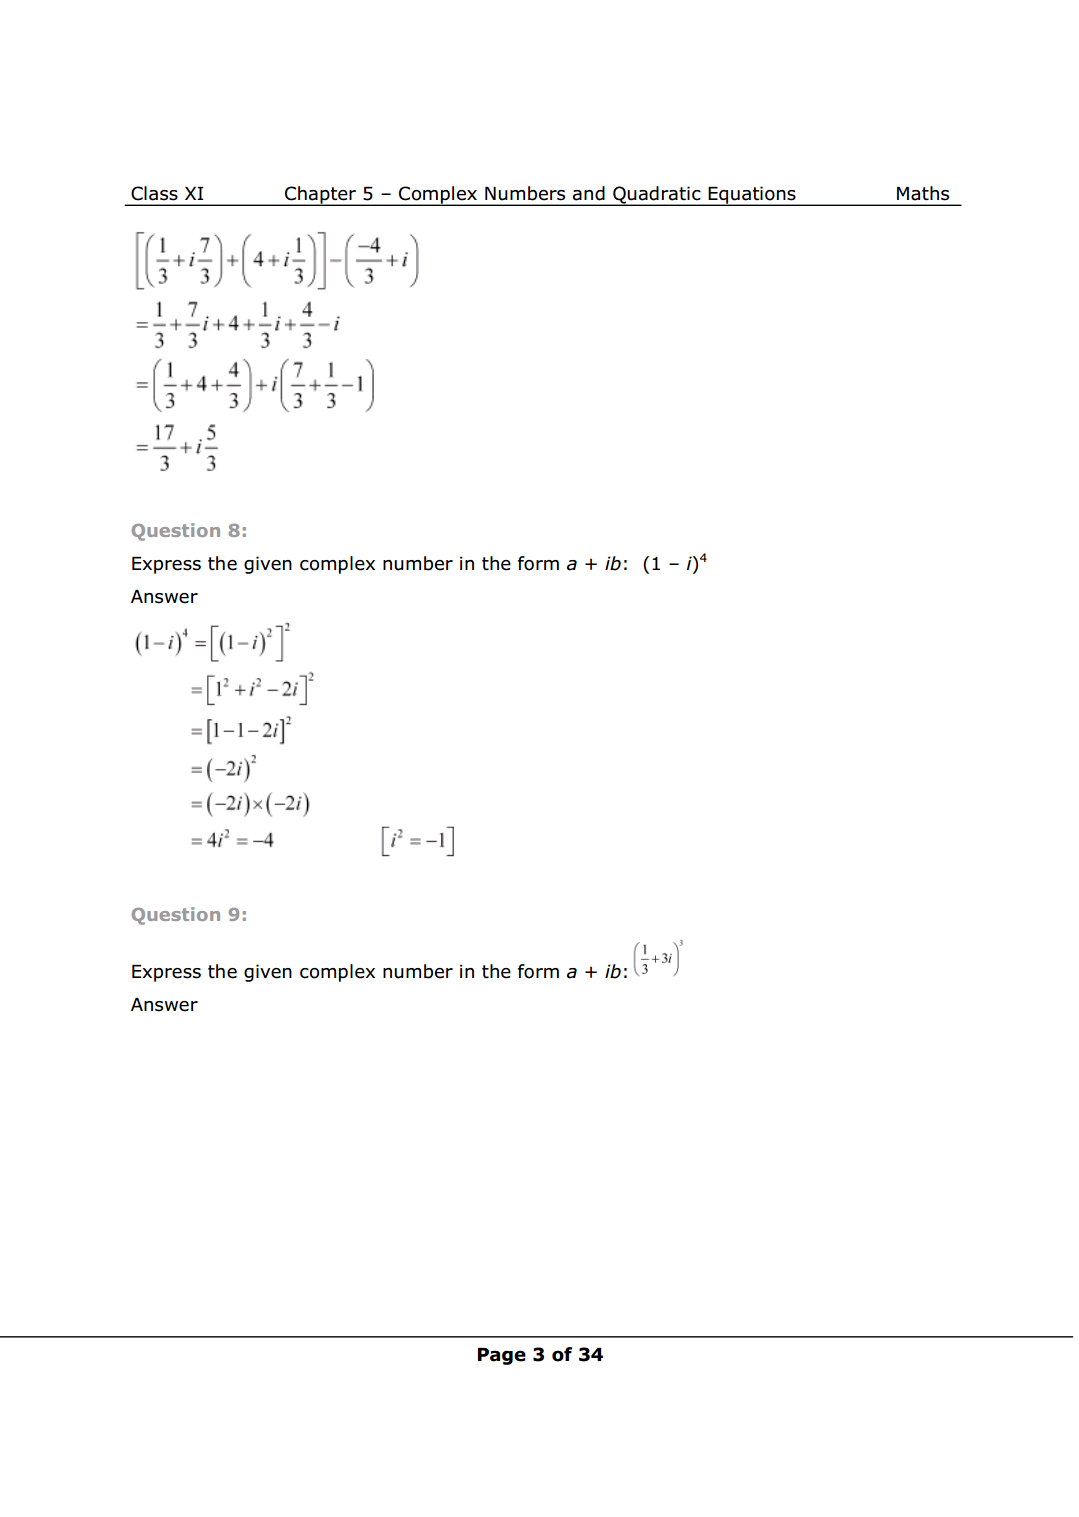 Class 11 math chapter 5 exercise 5.1 Solutions Image 3